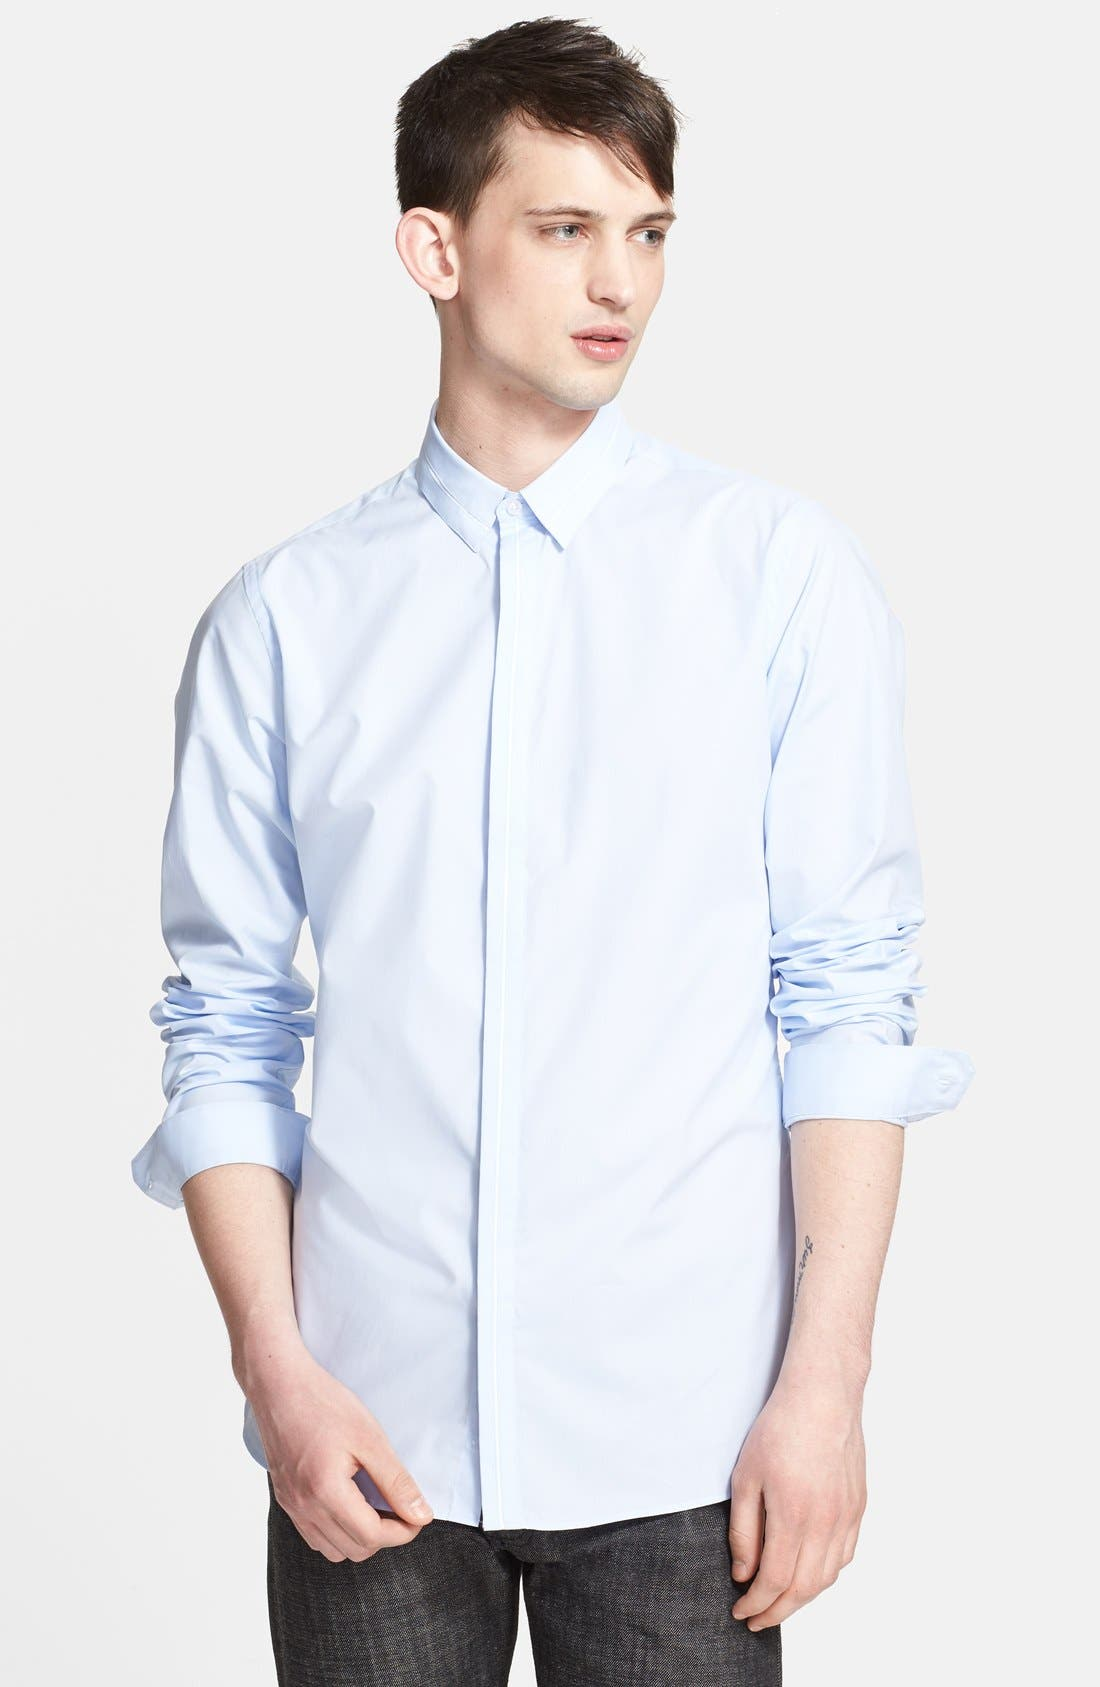 Alternate Image 1 Selected - The Kooples Fitted Dress Shirt